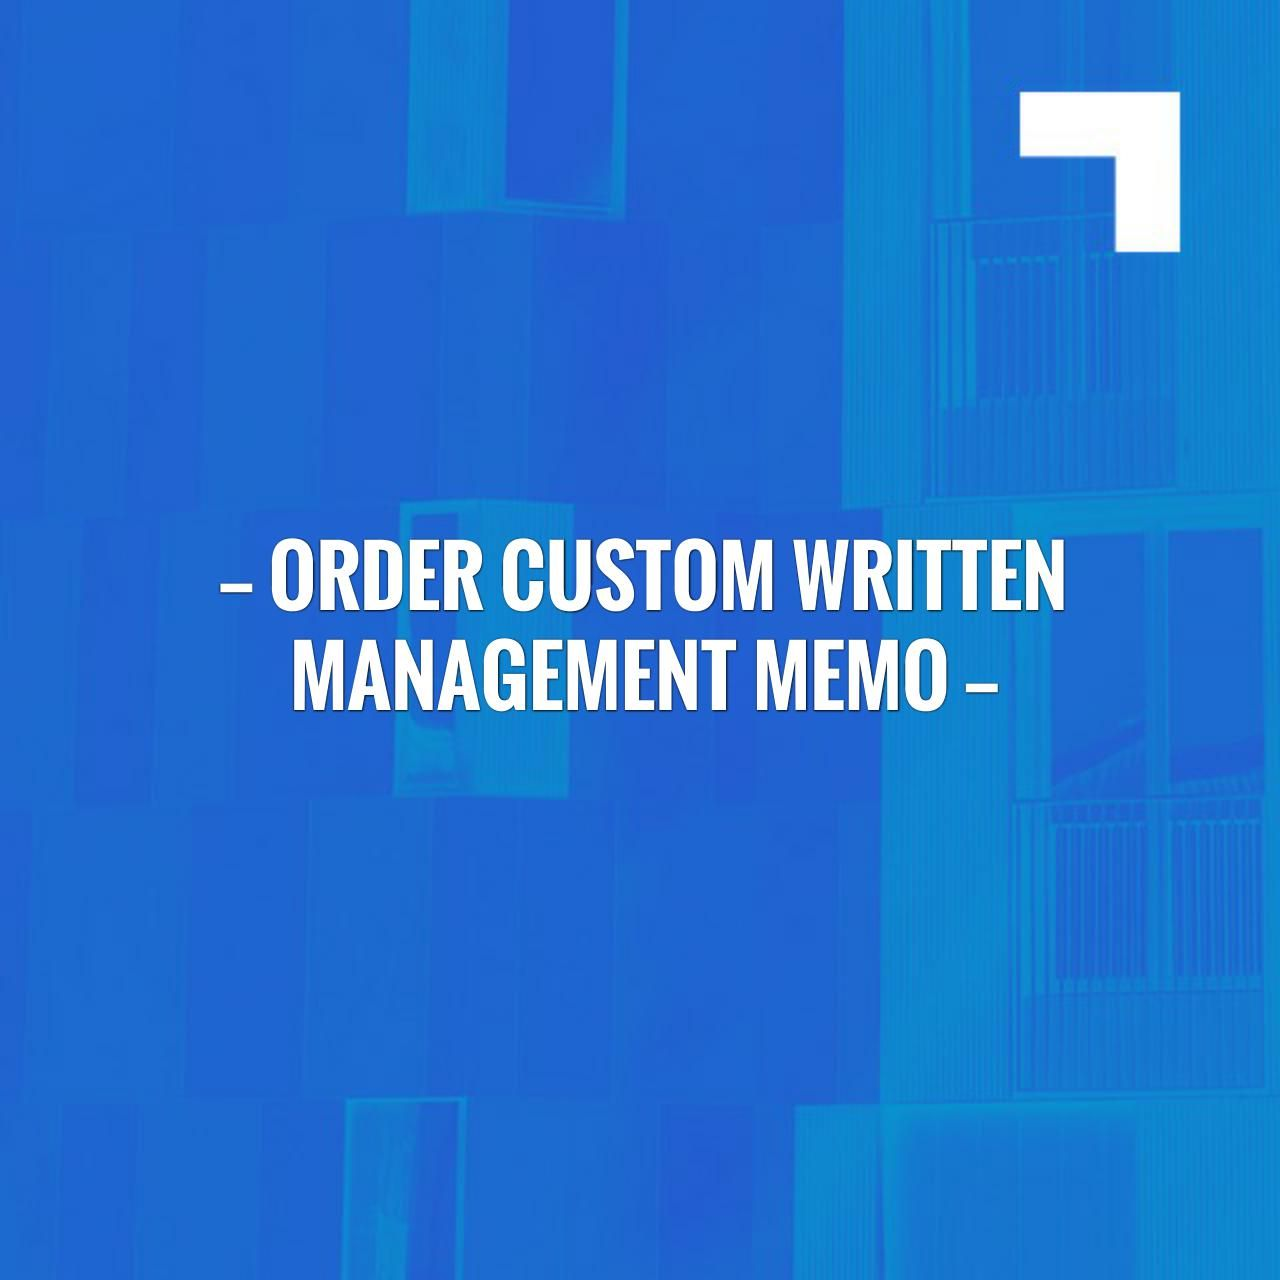 Order Custom Written Management Memo